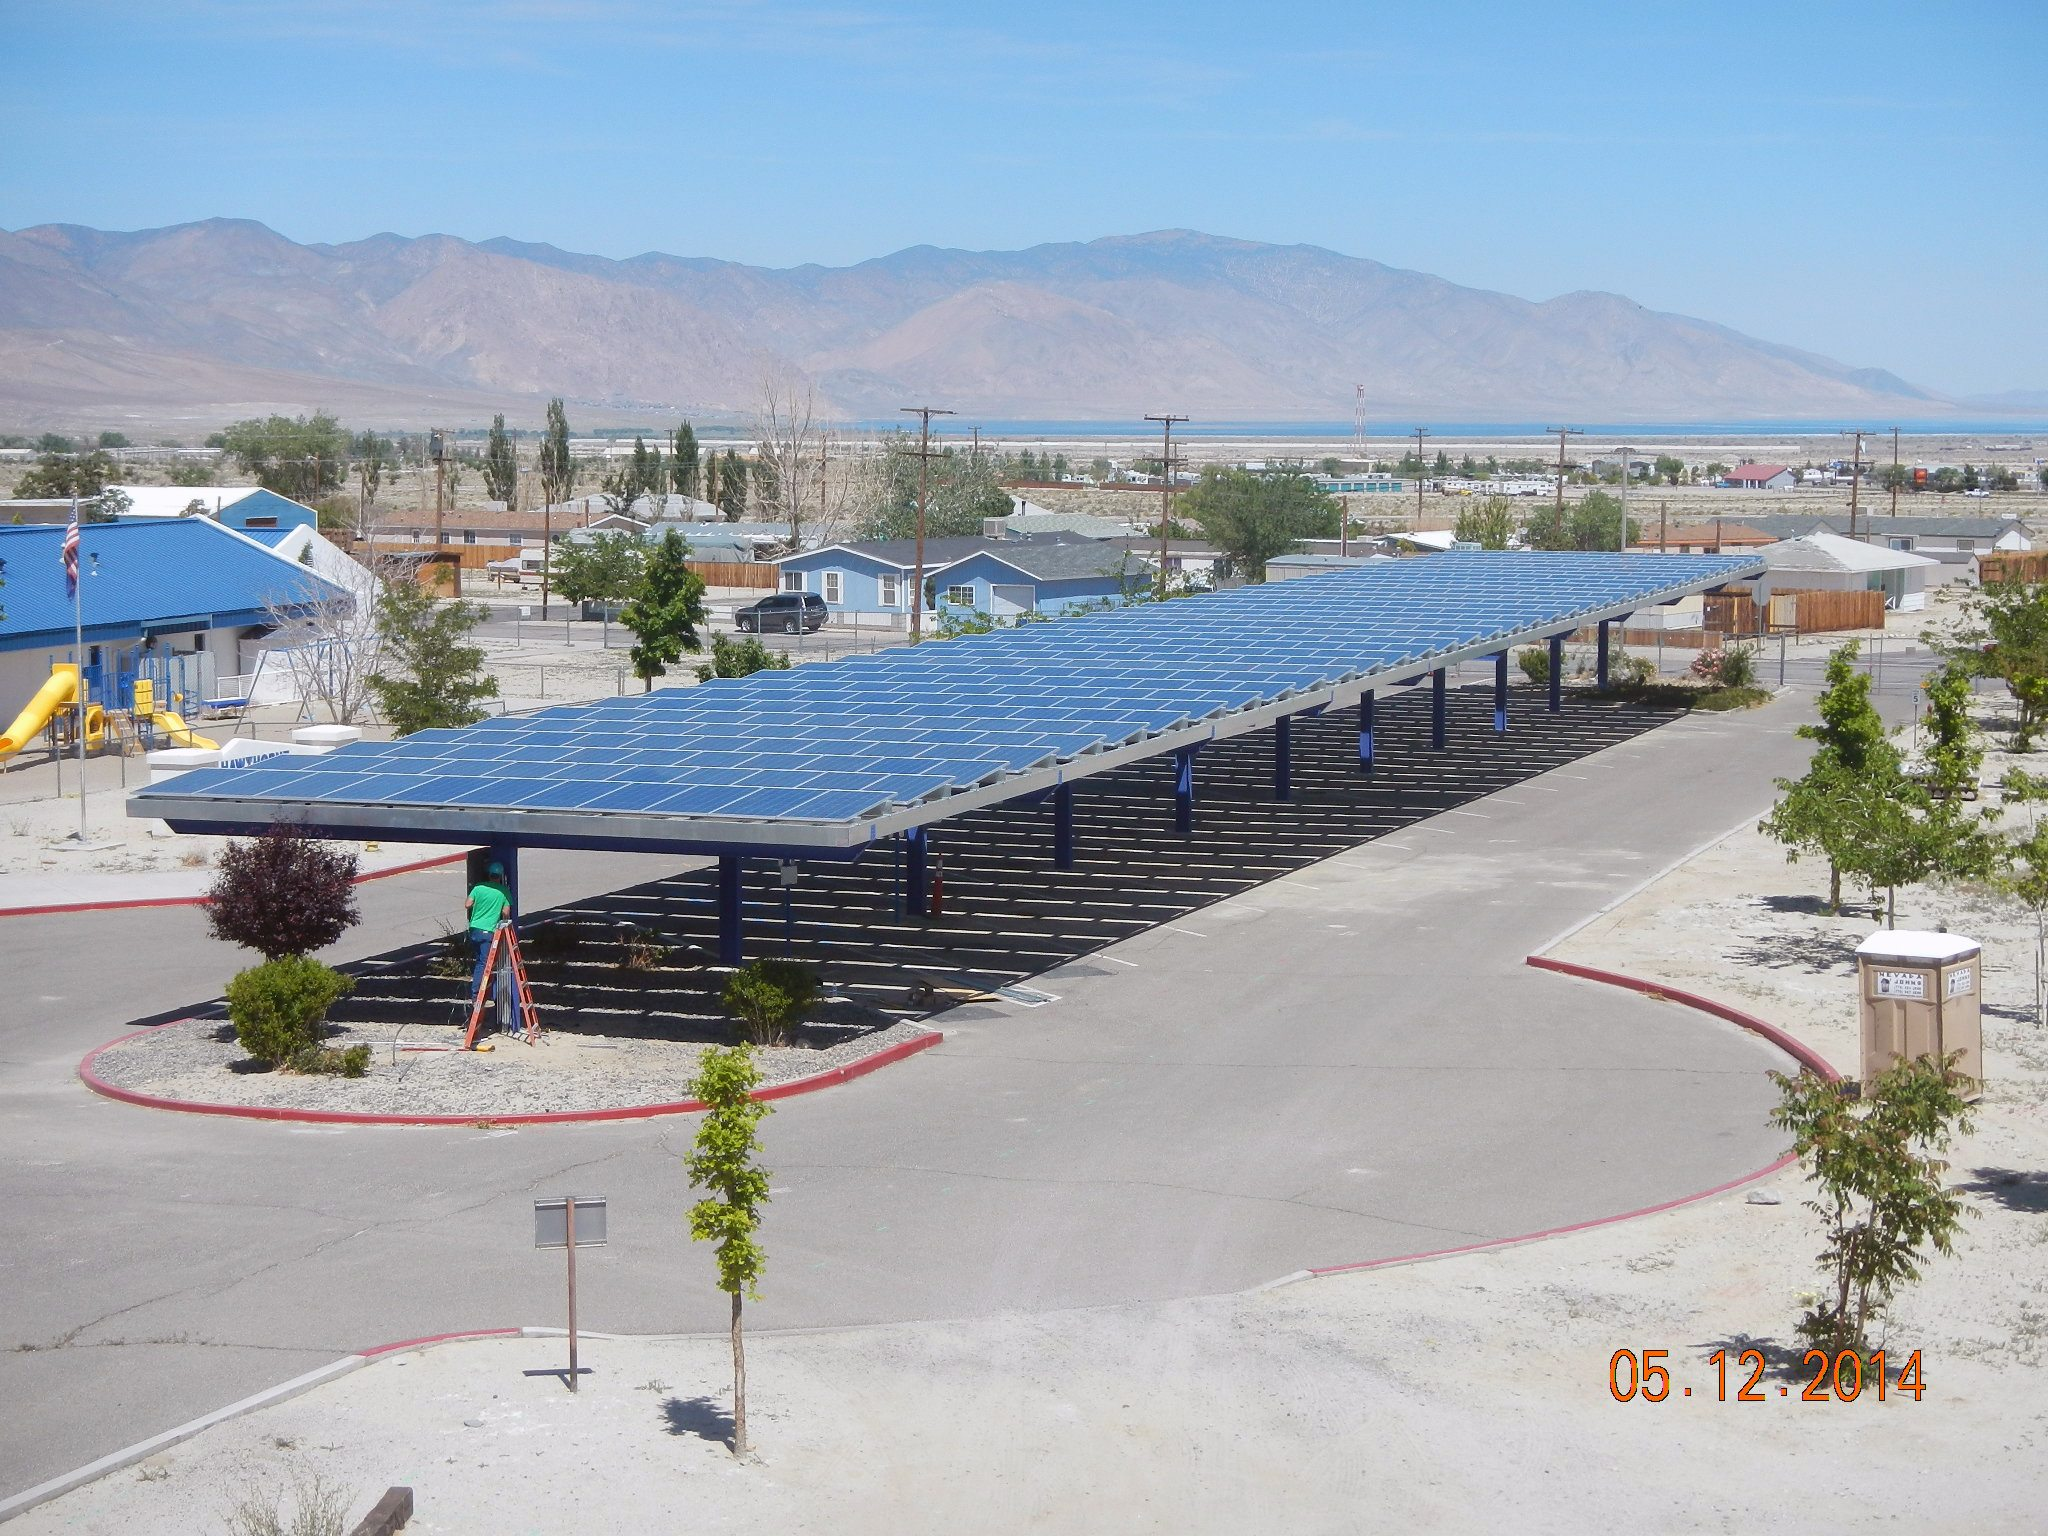 Local schools power into future with solar panel installation